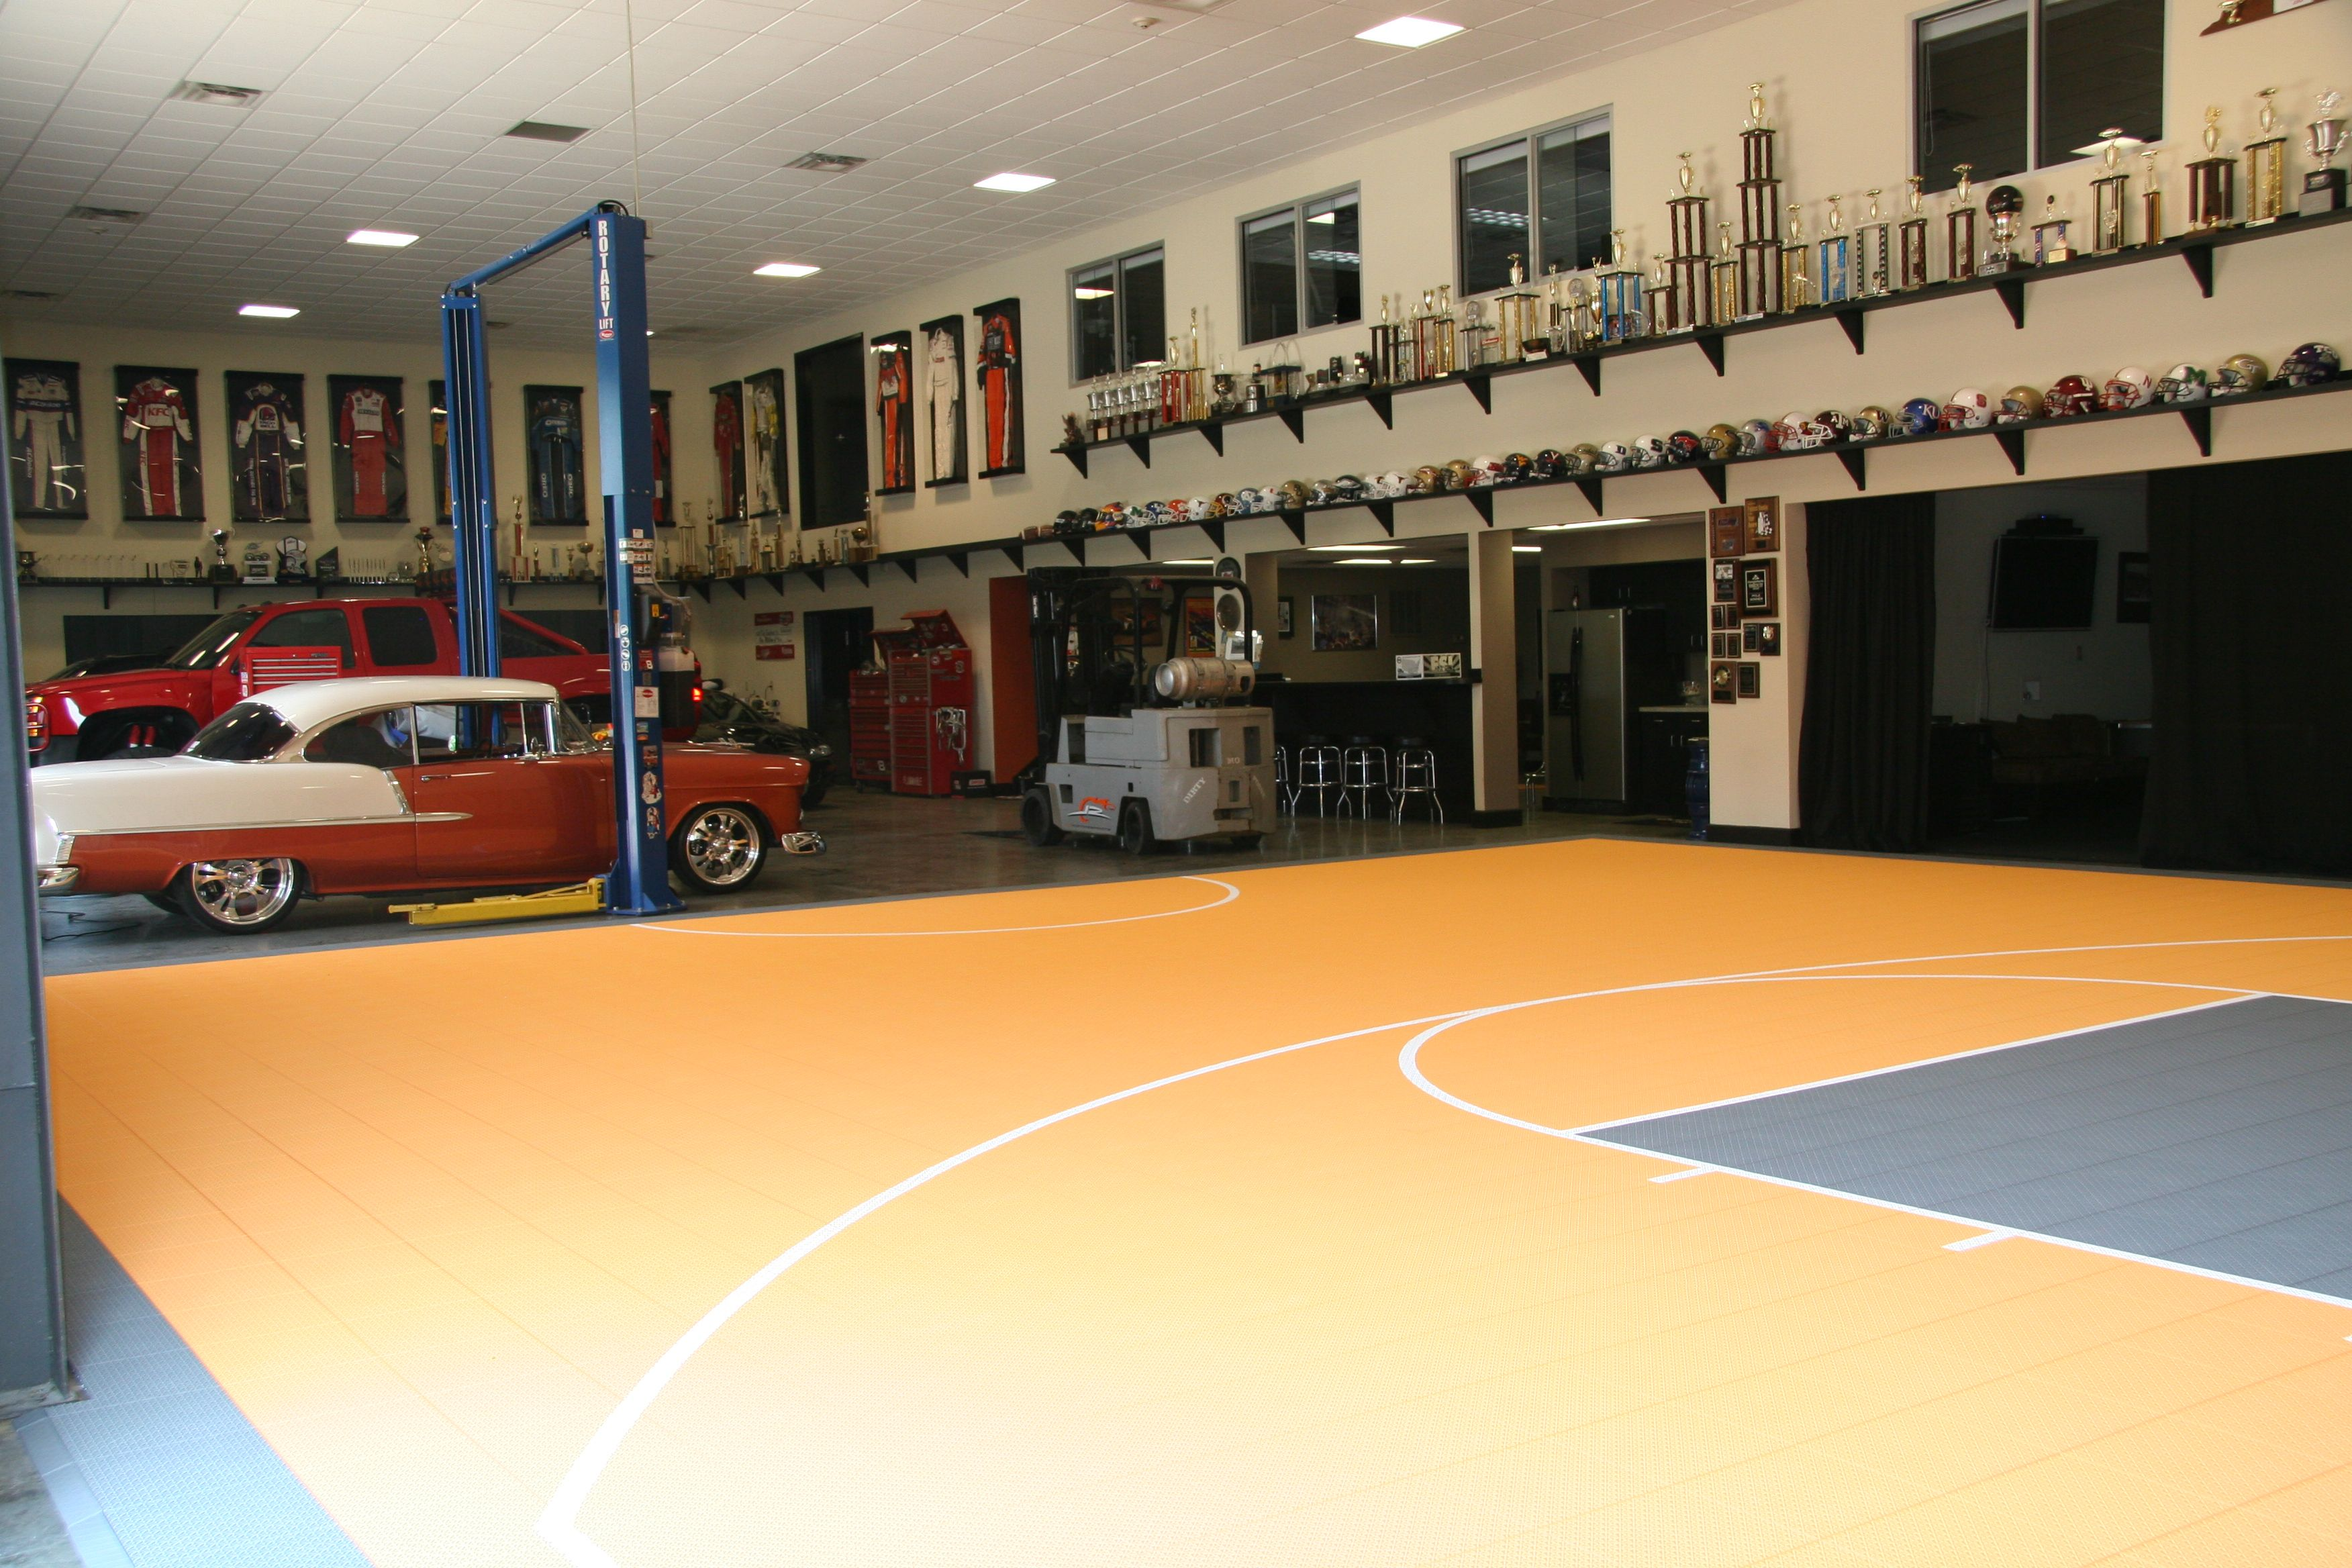 Indoor basketball court in a large warehouse type garage for Basketball hoop inside garage